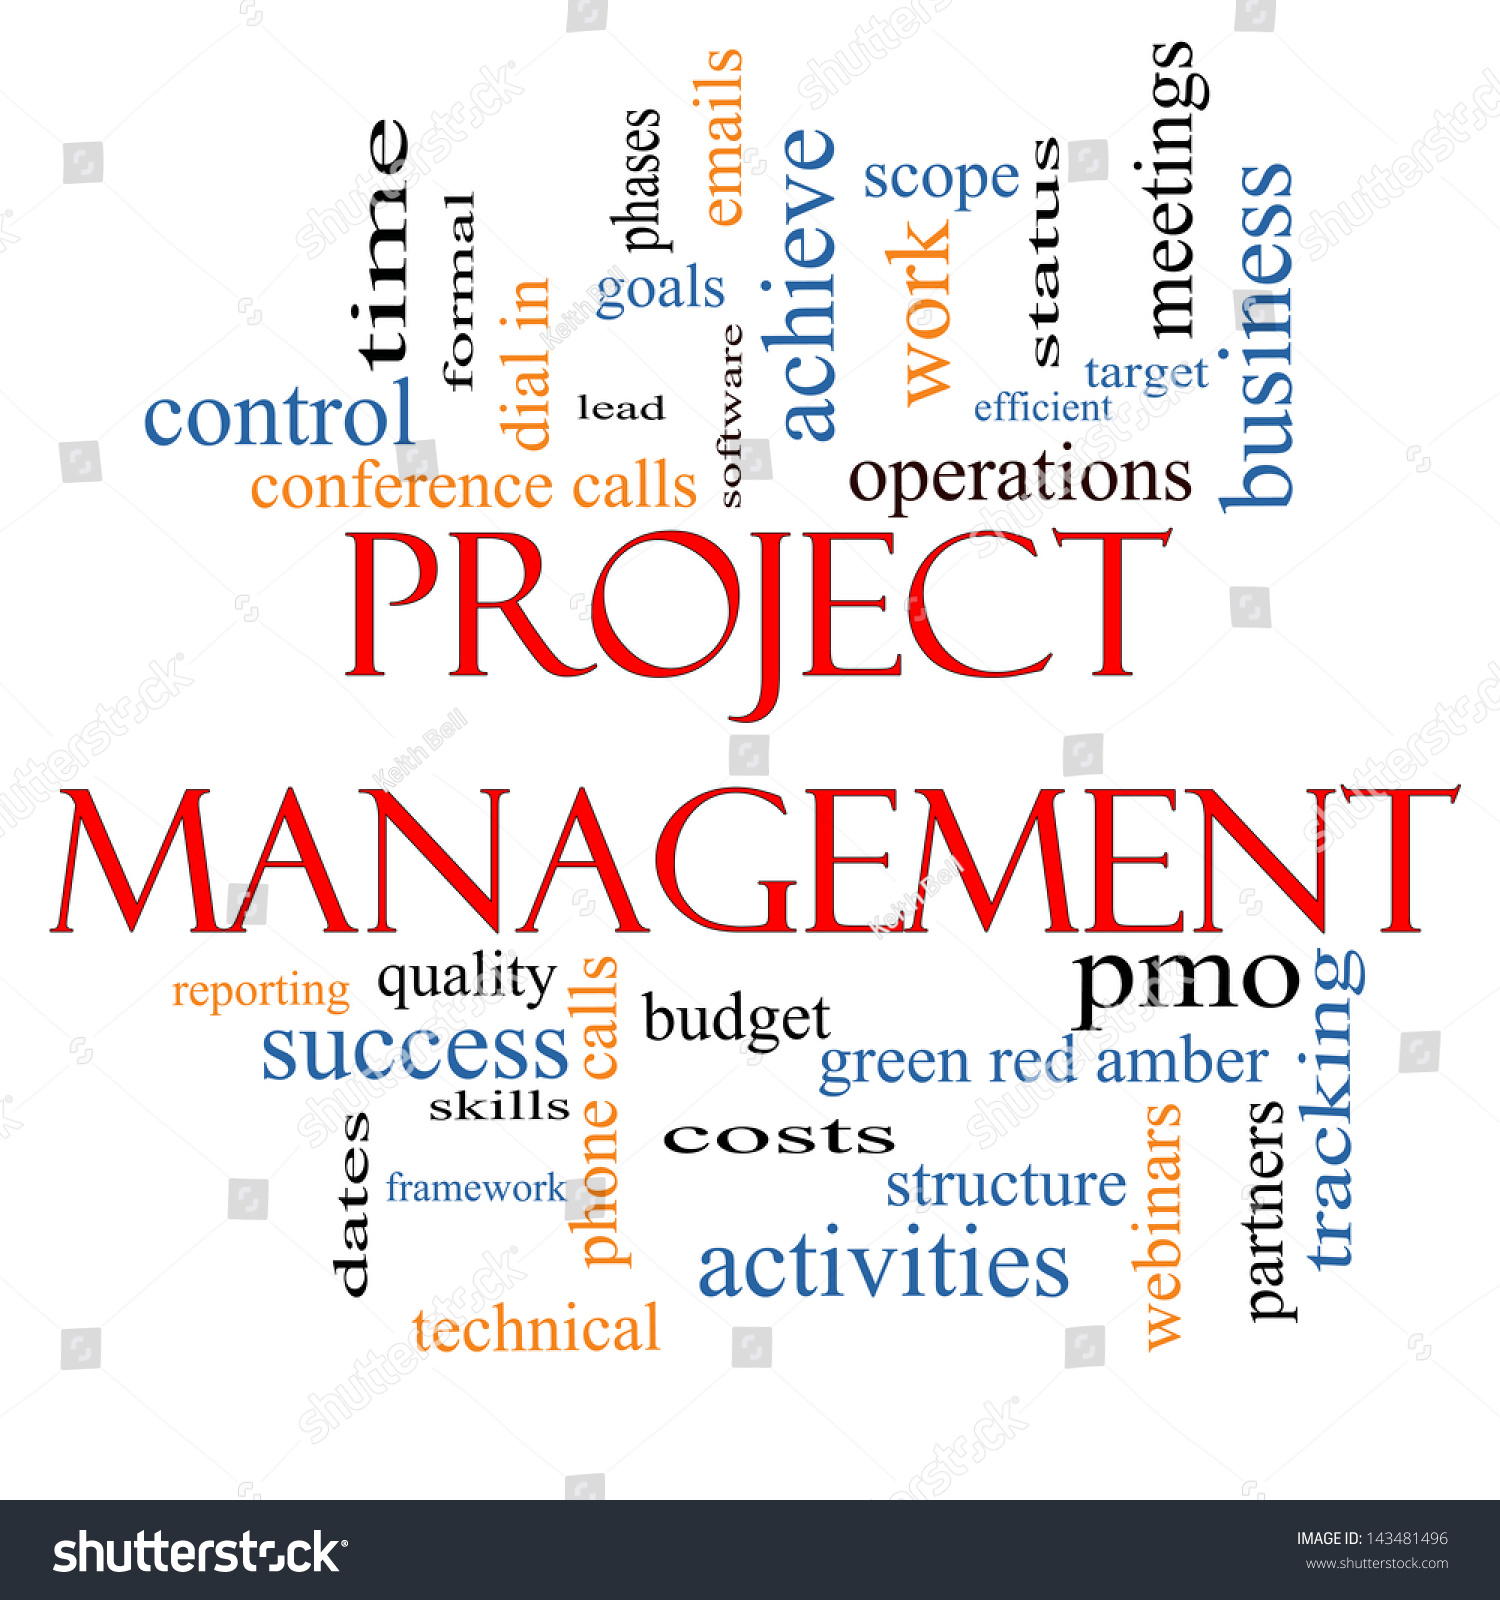 project management word